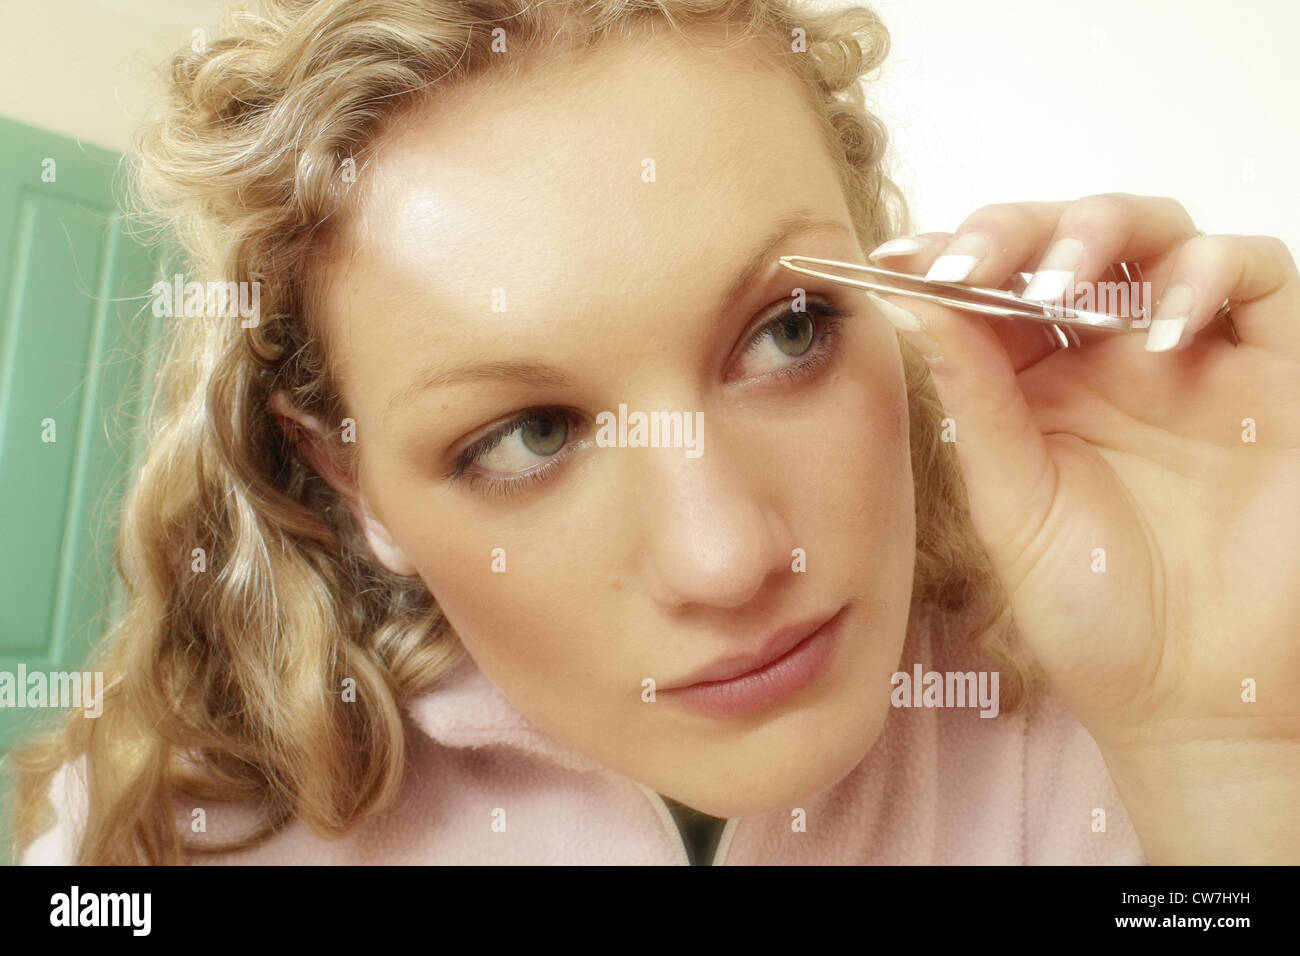 Picking The Eyebrows Stock Photos Picking The Eyebrows Stock